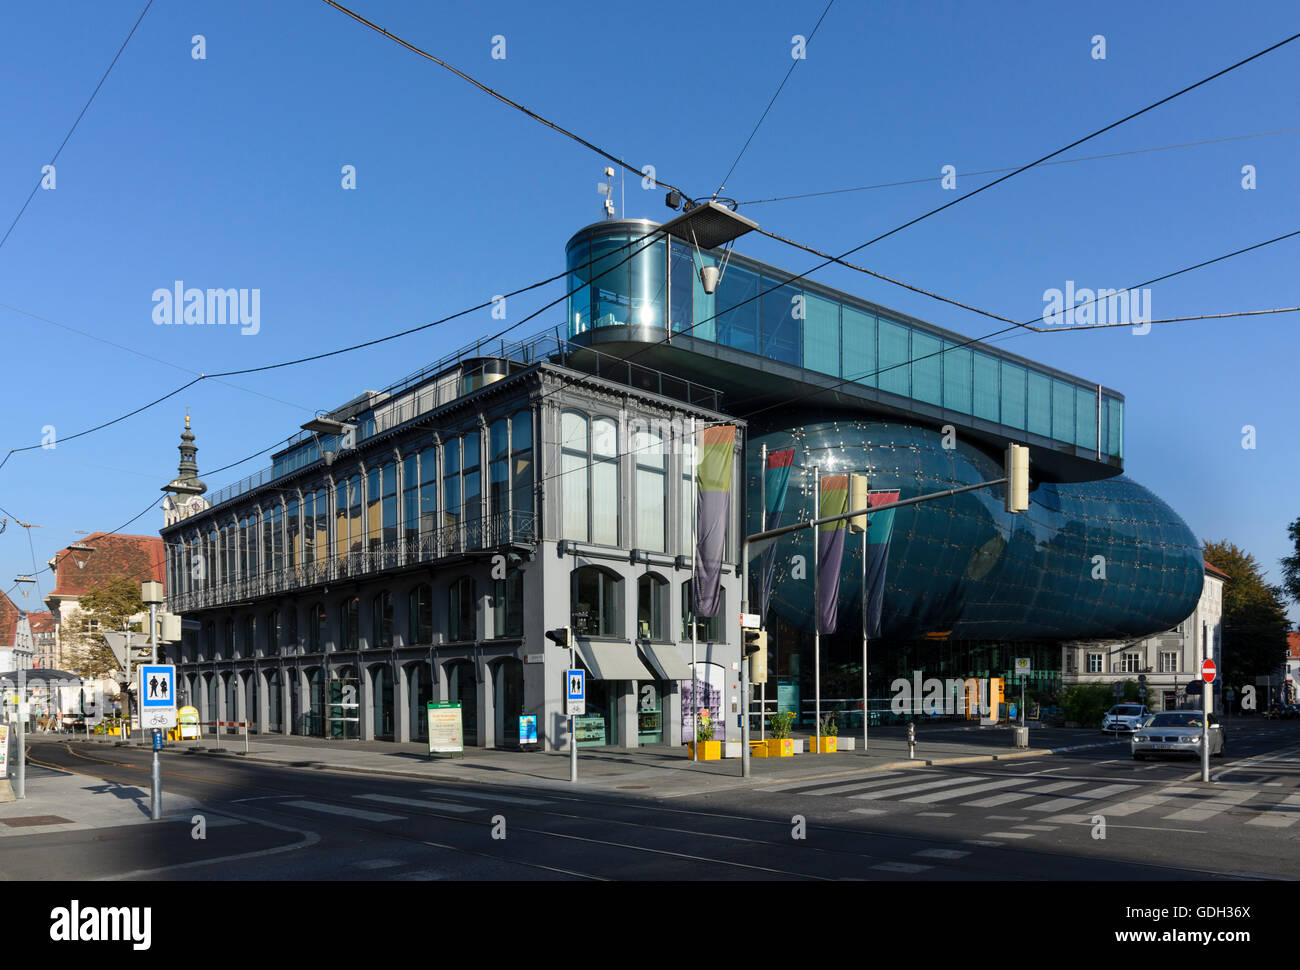 Container Haus Graz Kunsthaus Graz Stock Photos Kunsthaus Graz Stock Images Alamy